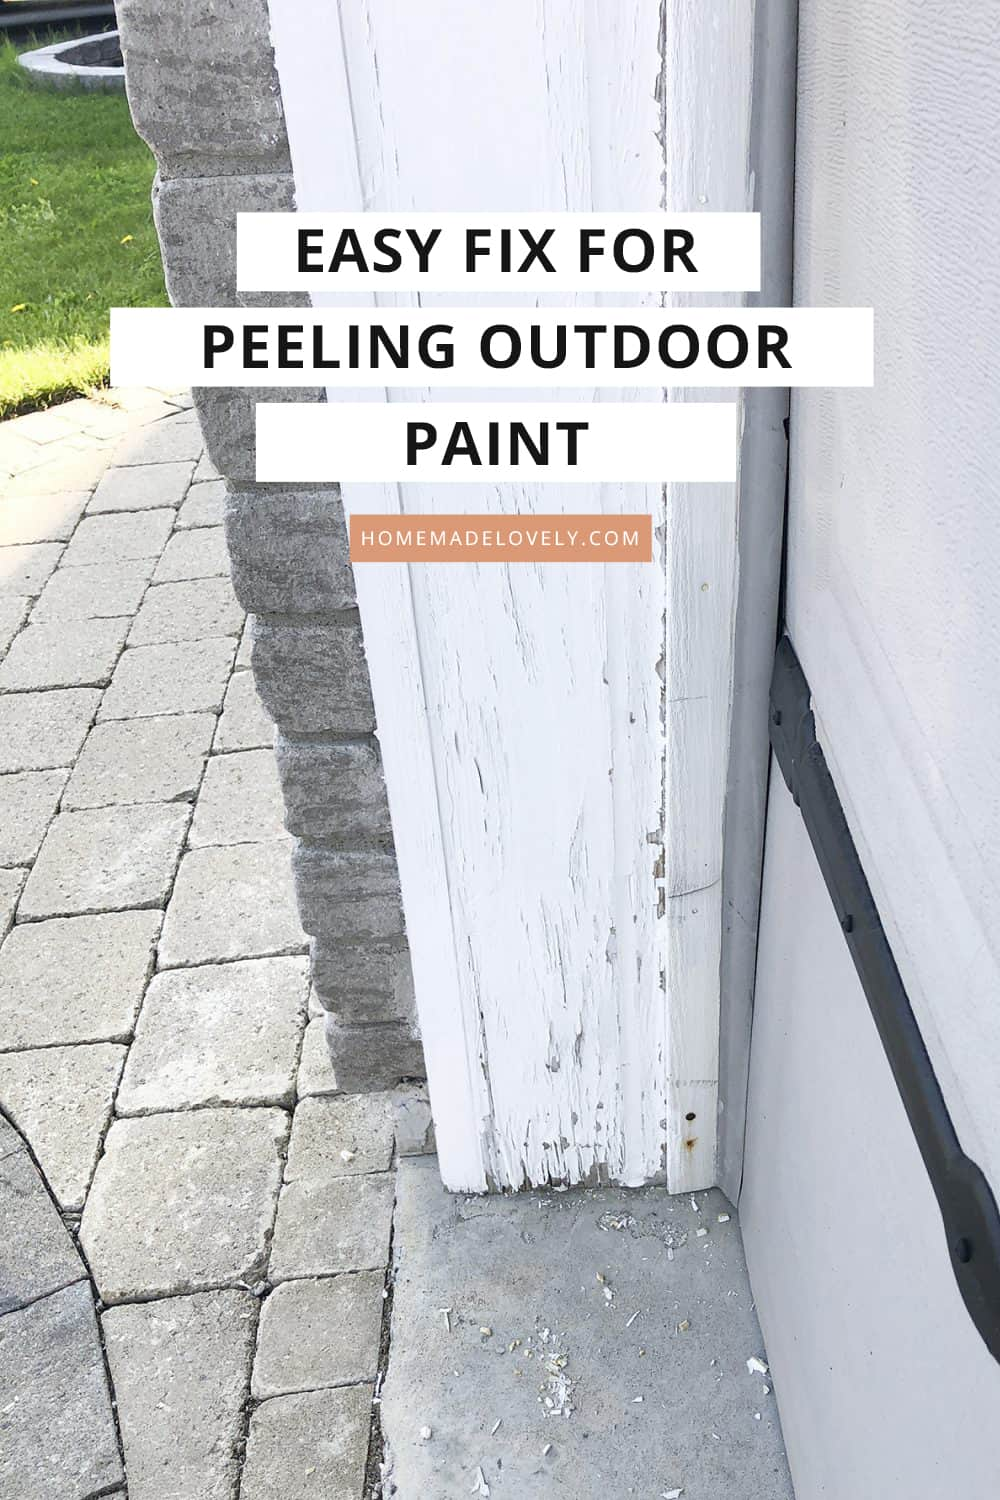 Solution for peeling outdoor paint